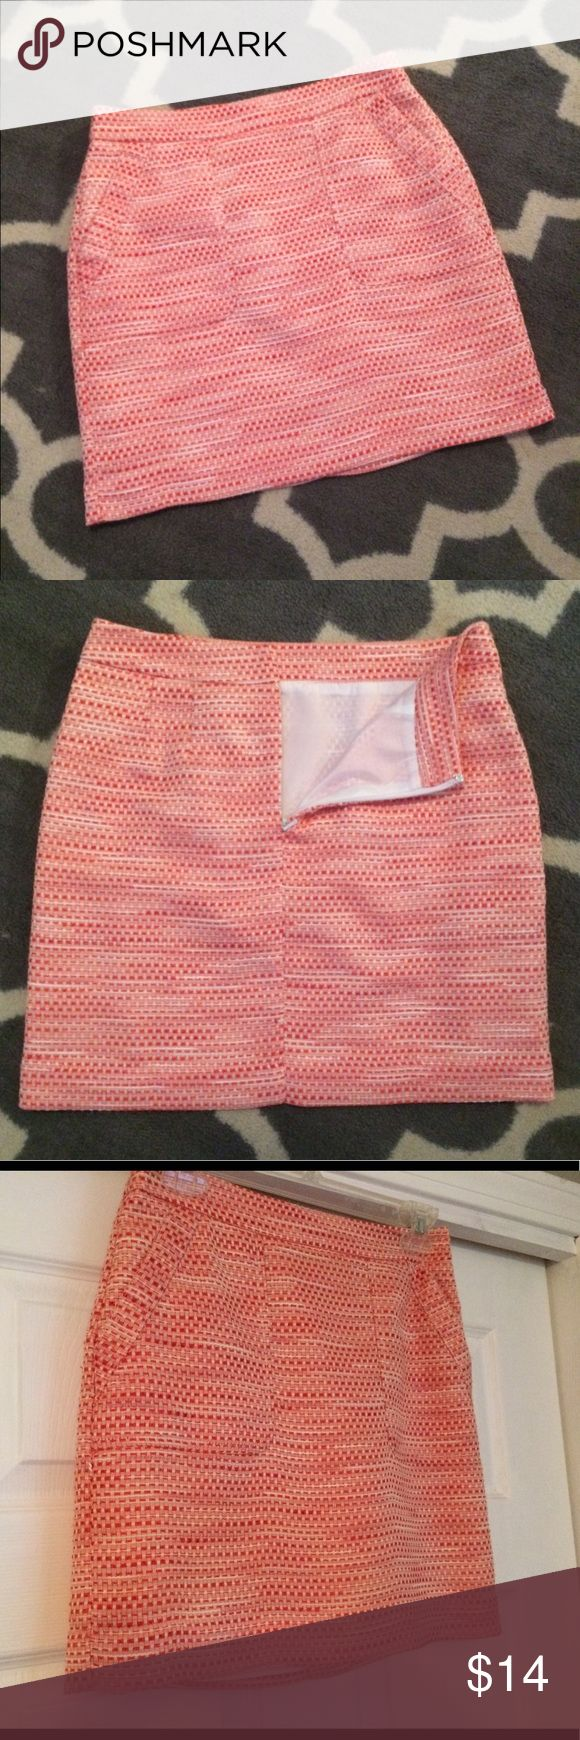 Anne Taylor Loft pink mini tweed skirt. Size 2p Ann Taylor Loft Mini Skirt in a pink lightweight tweed material. Great condition. I LOVE this skirt but it's too tight for me now. Great for warm weather! LOFT Skirts Mini